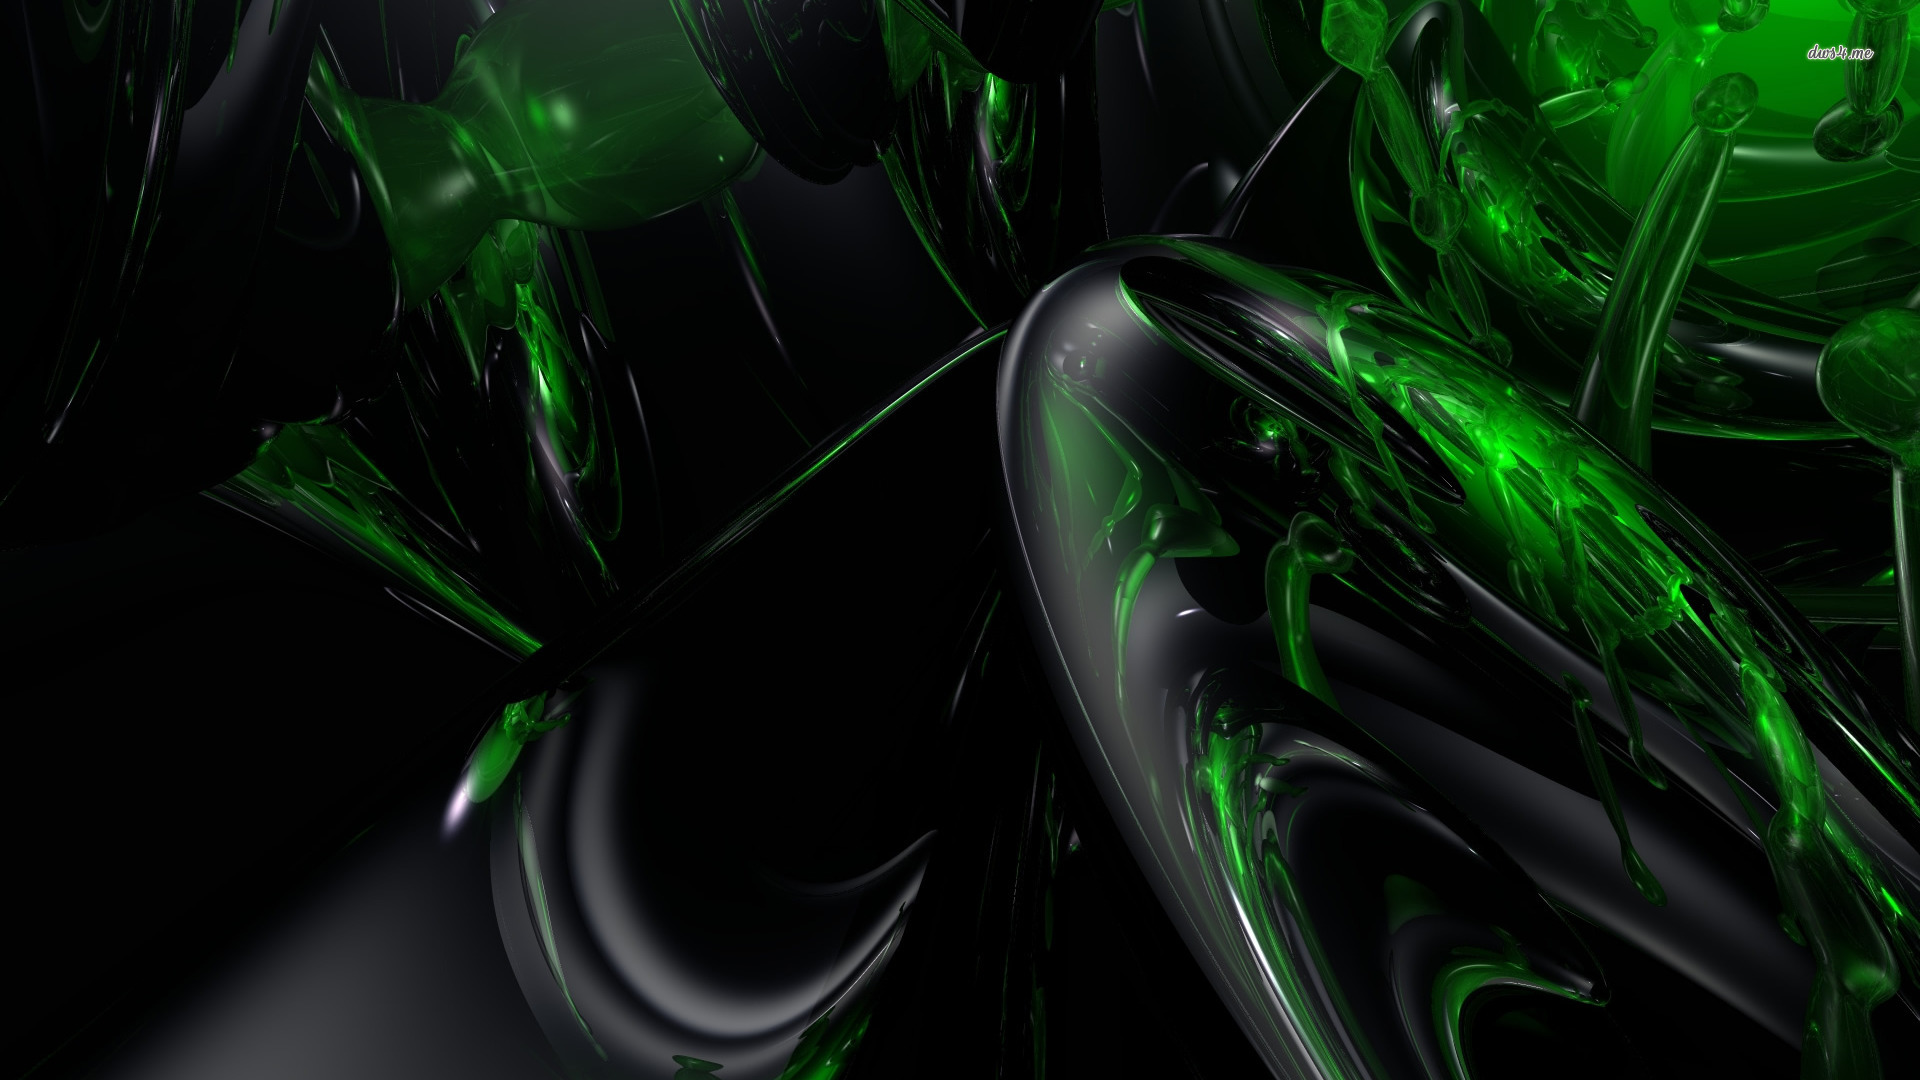 Another set of abstract black themed wallpapers in HD 1 Design 1920x1080